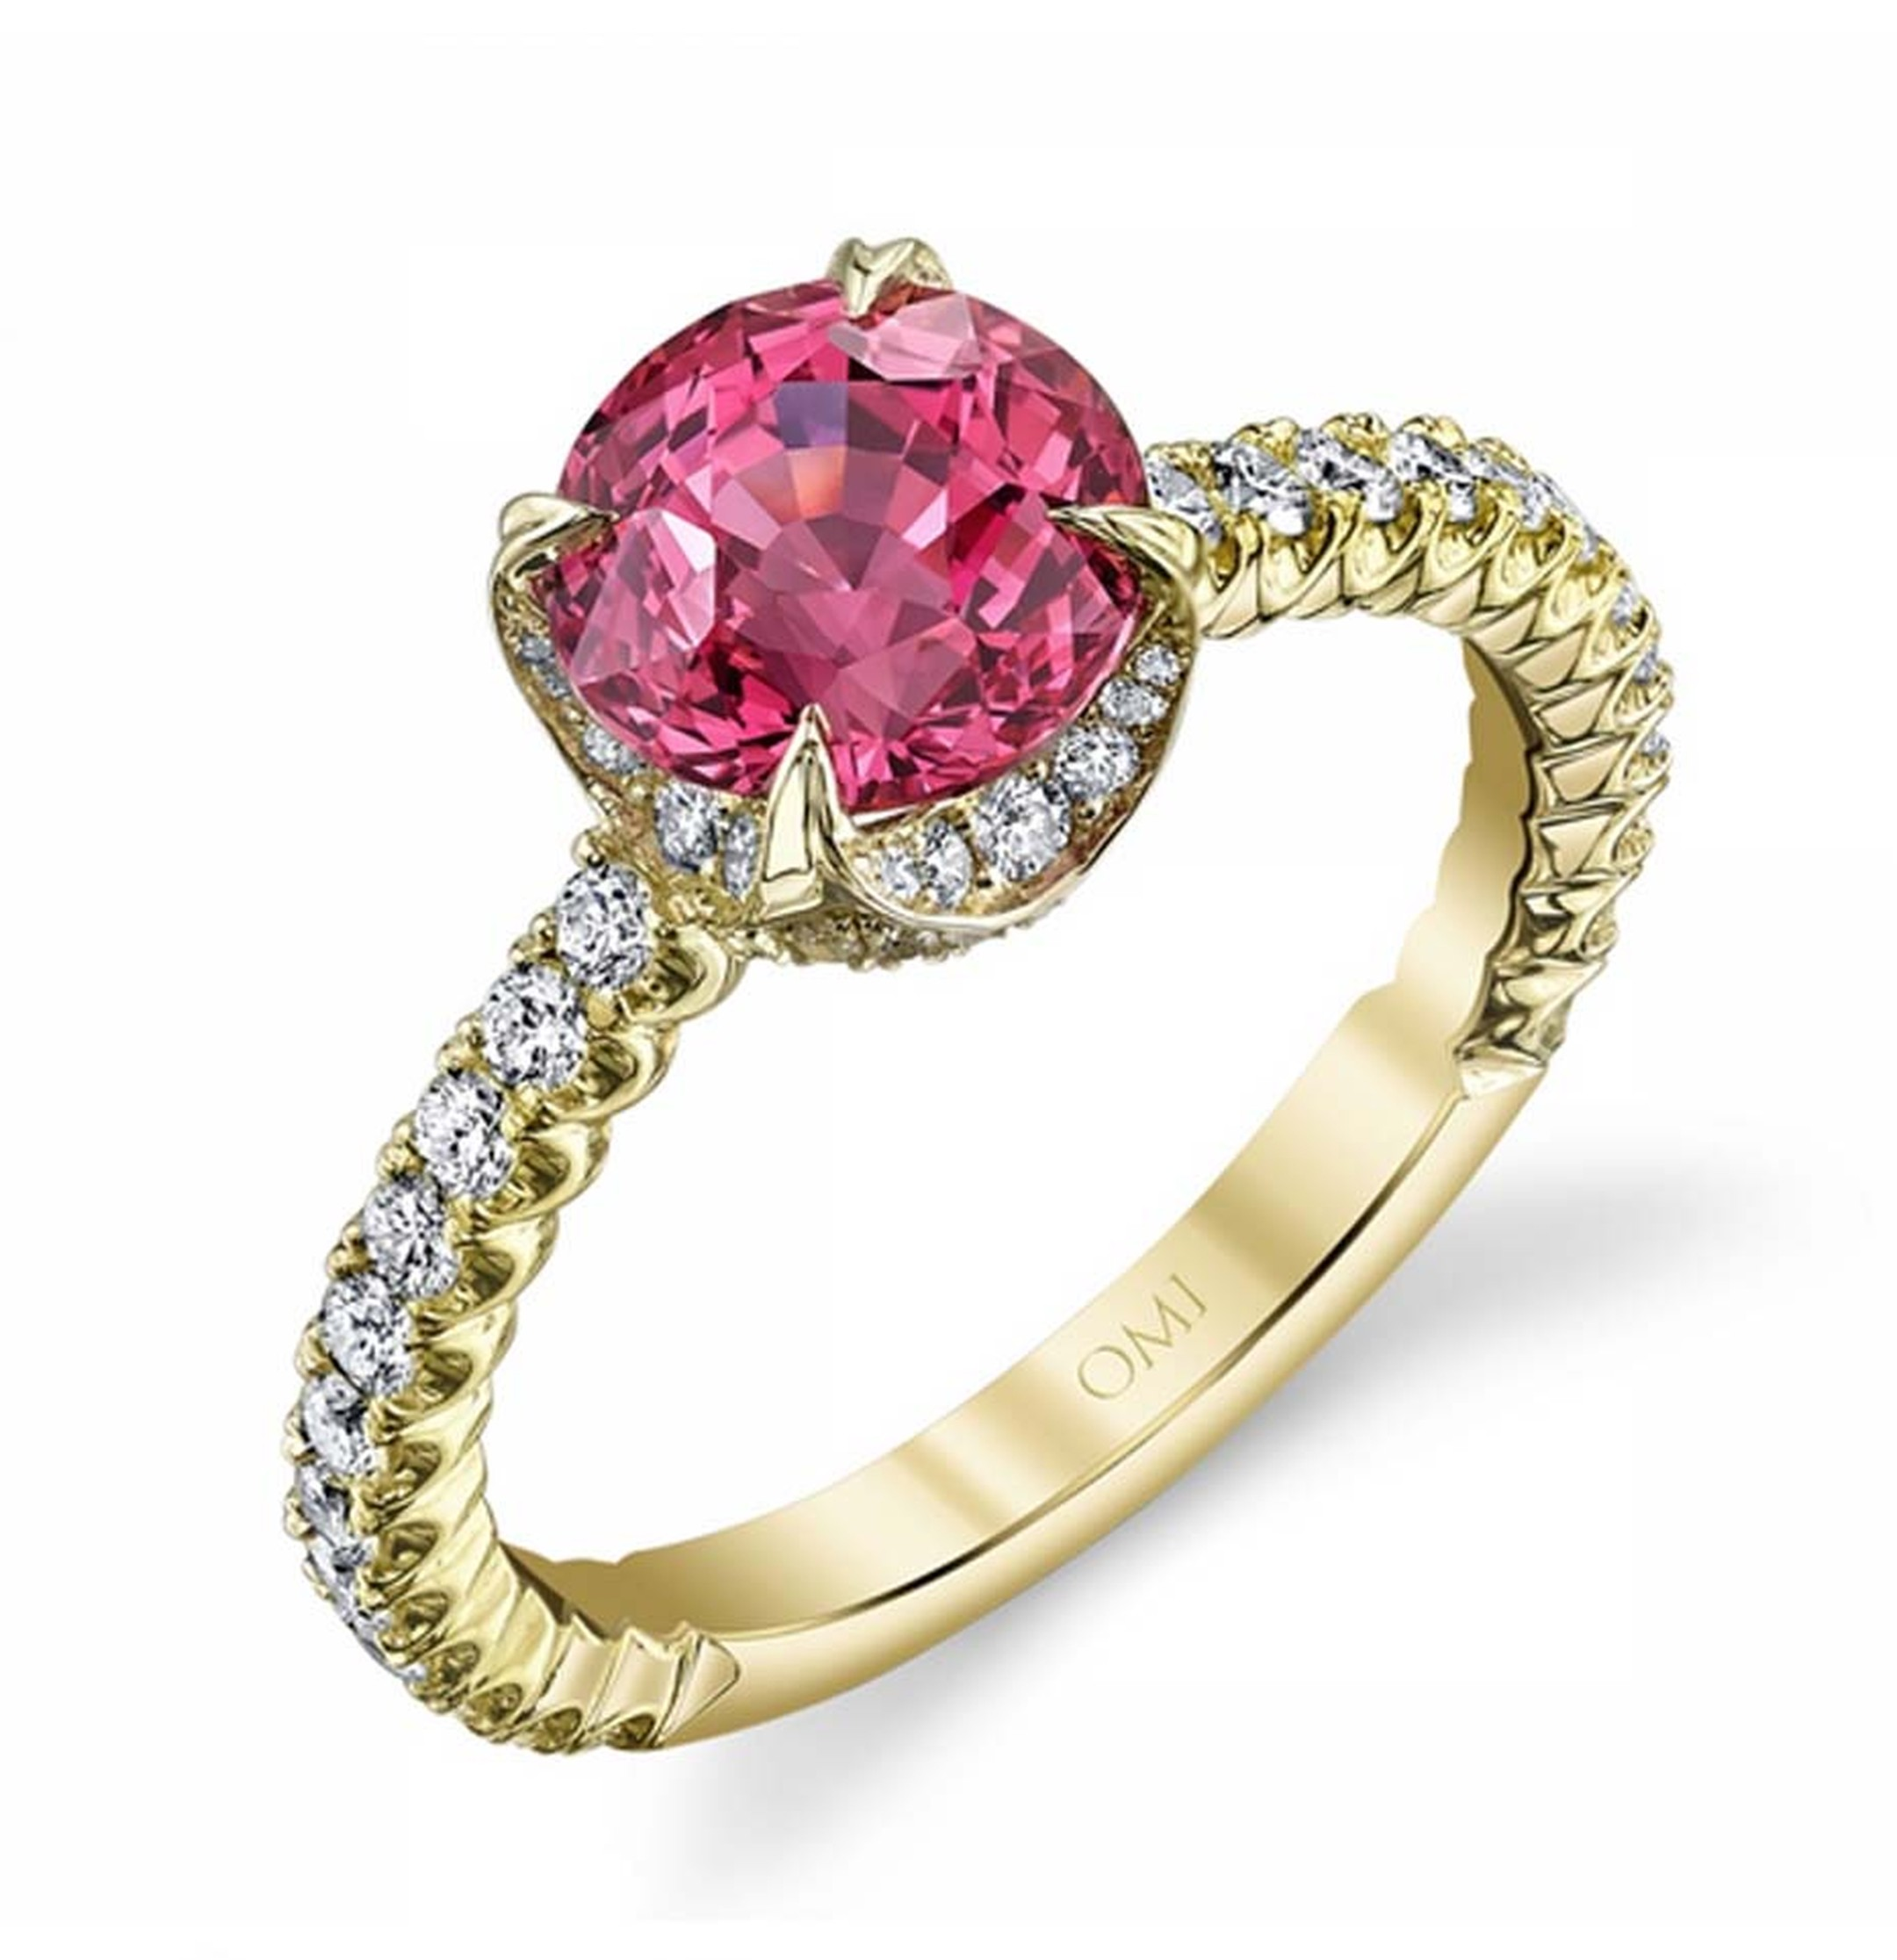 Omi Privé pink sapphire engagement ring featuring a round fancy-colour sapphire set in yellow gold with diamonds.